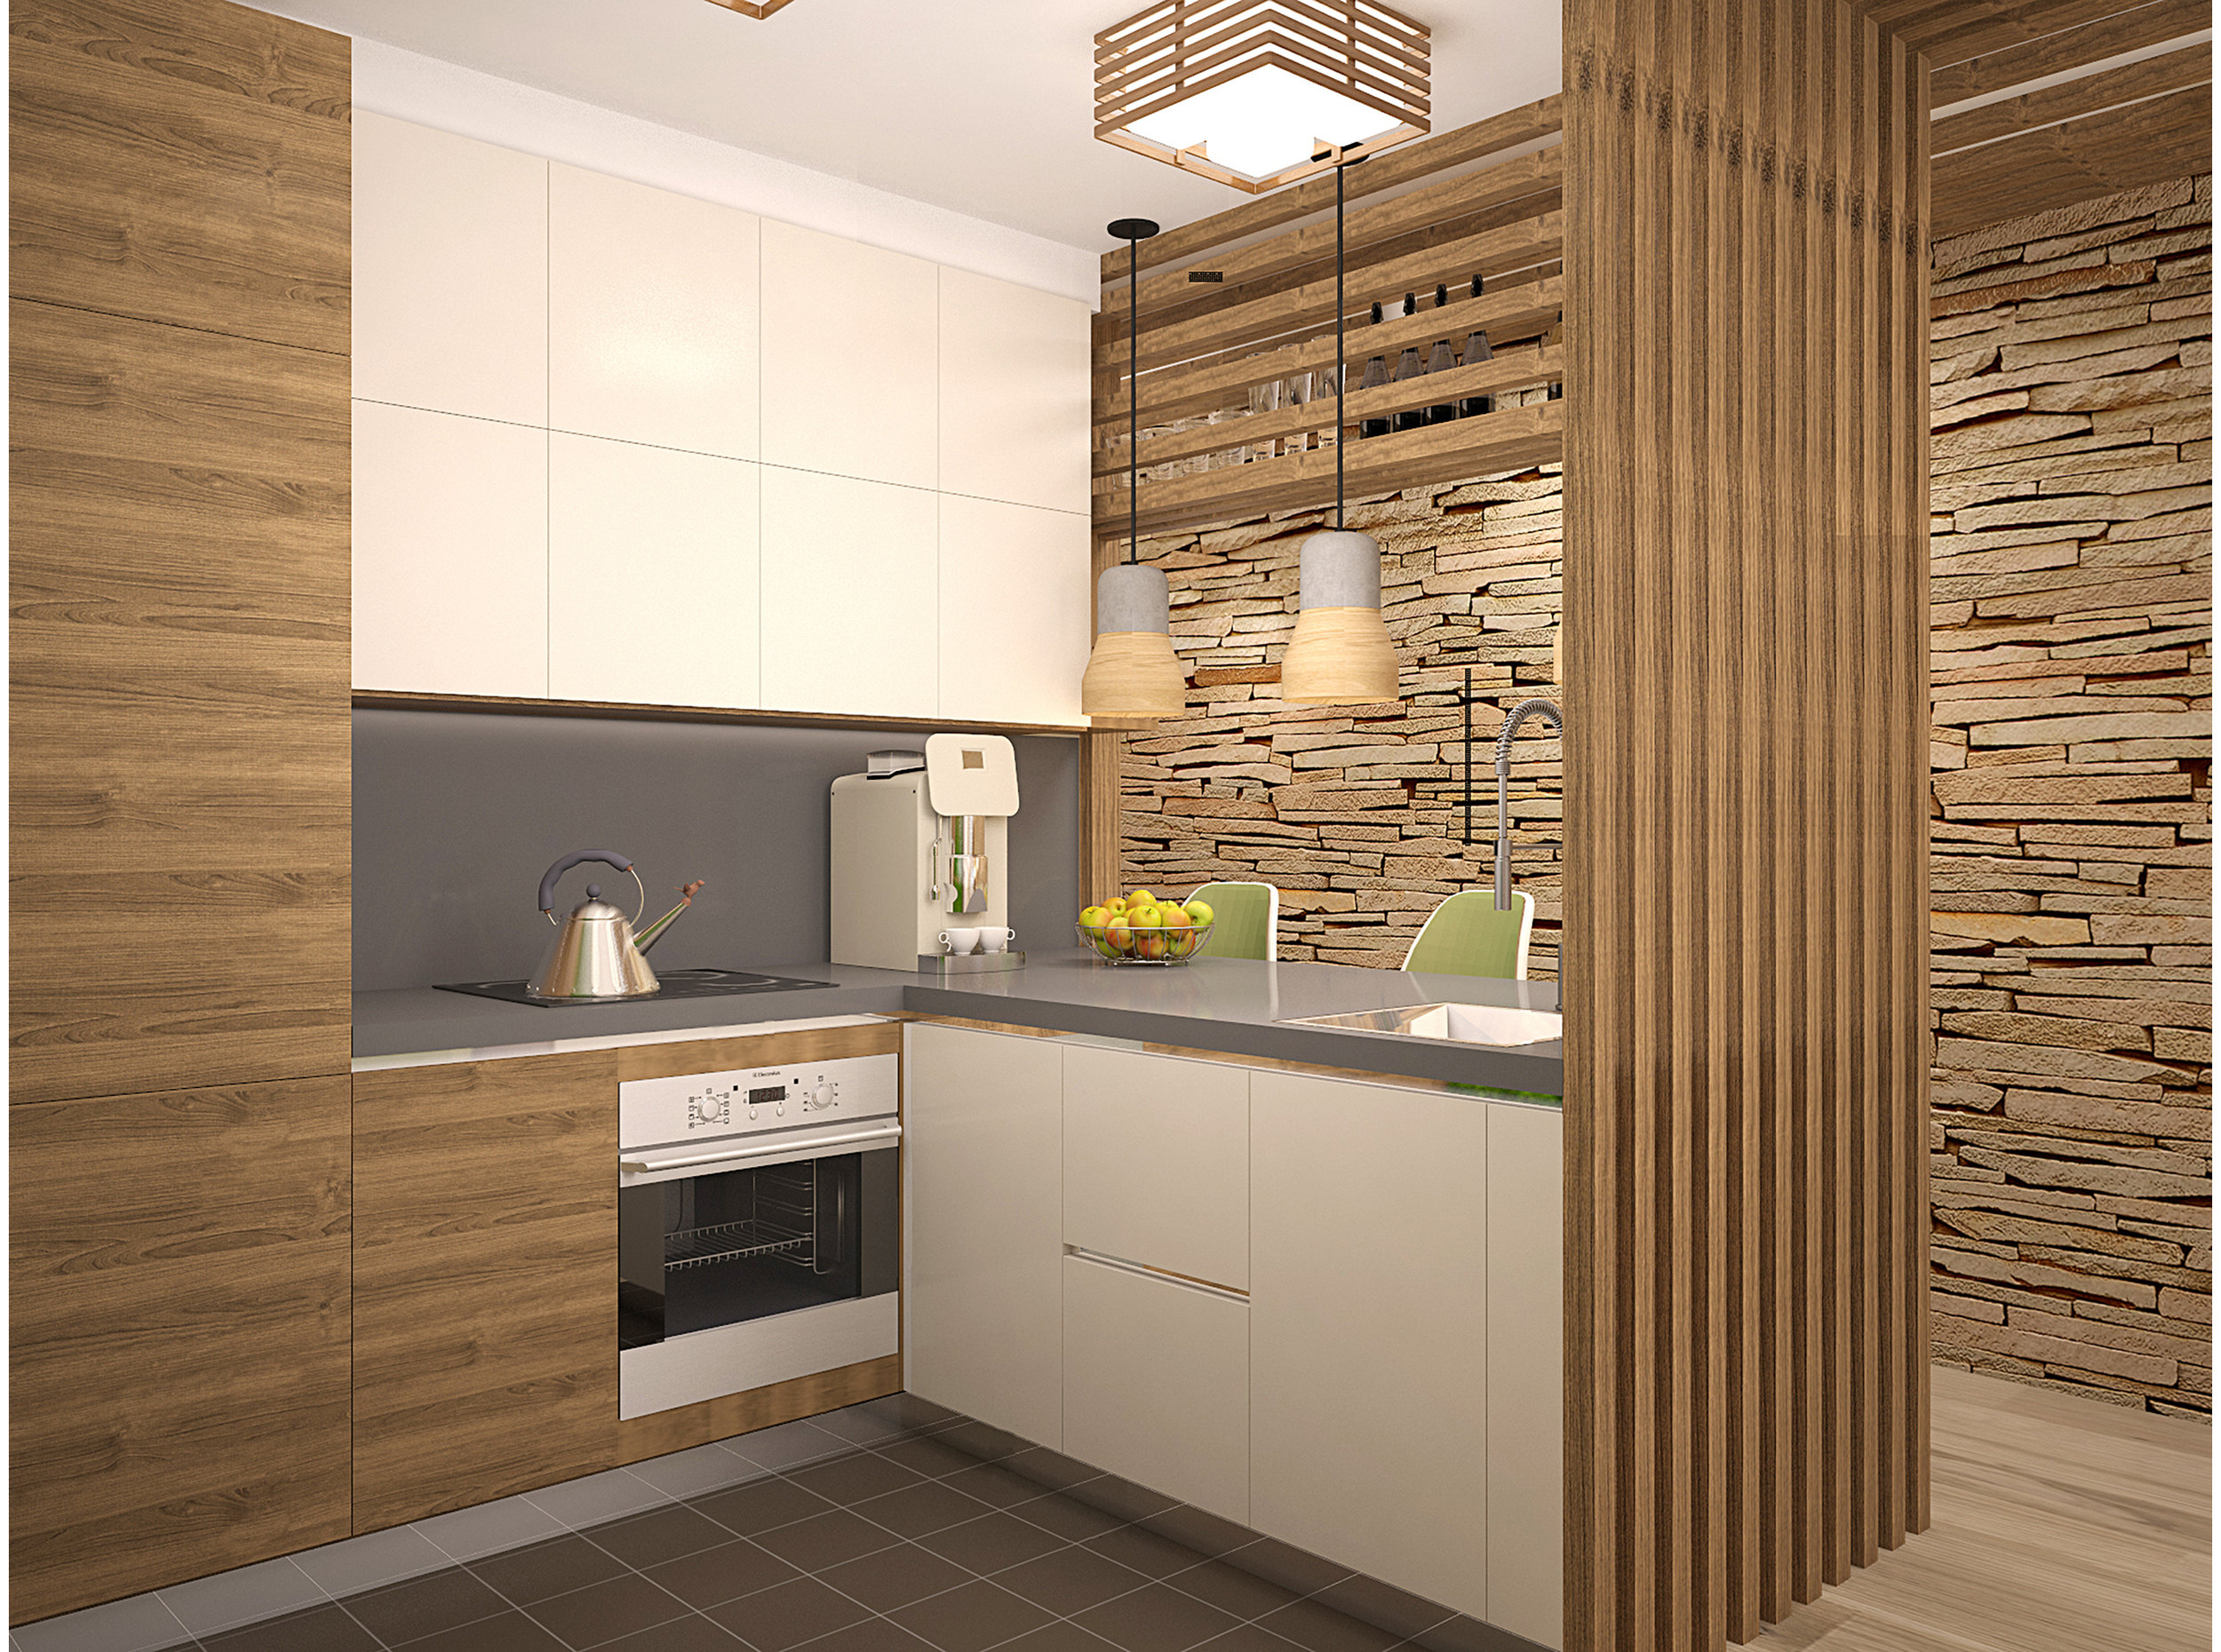 Copy of Contemporary kitchen L-shape with island